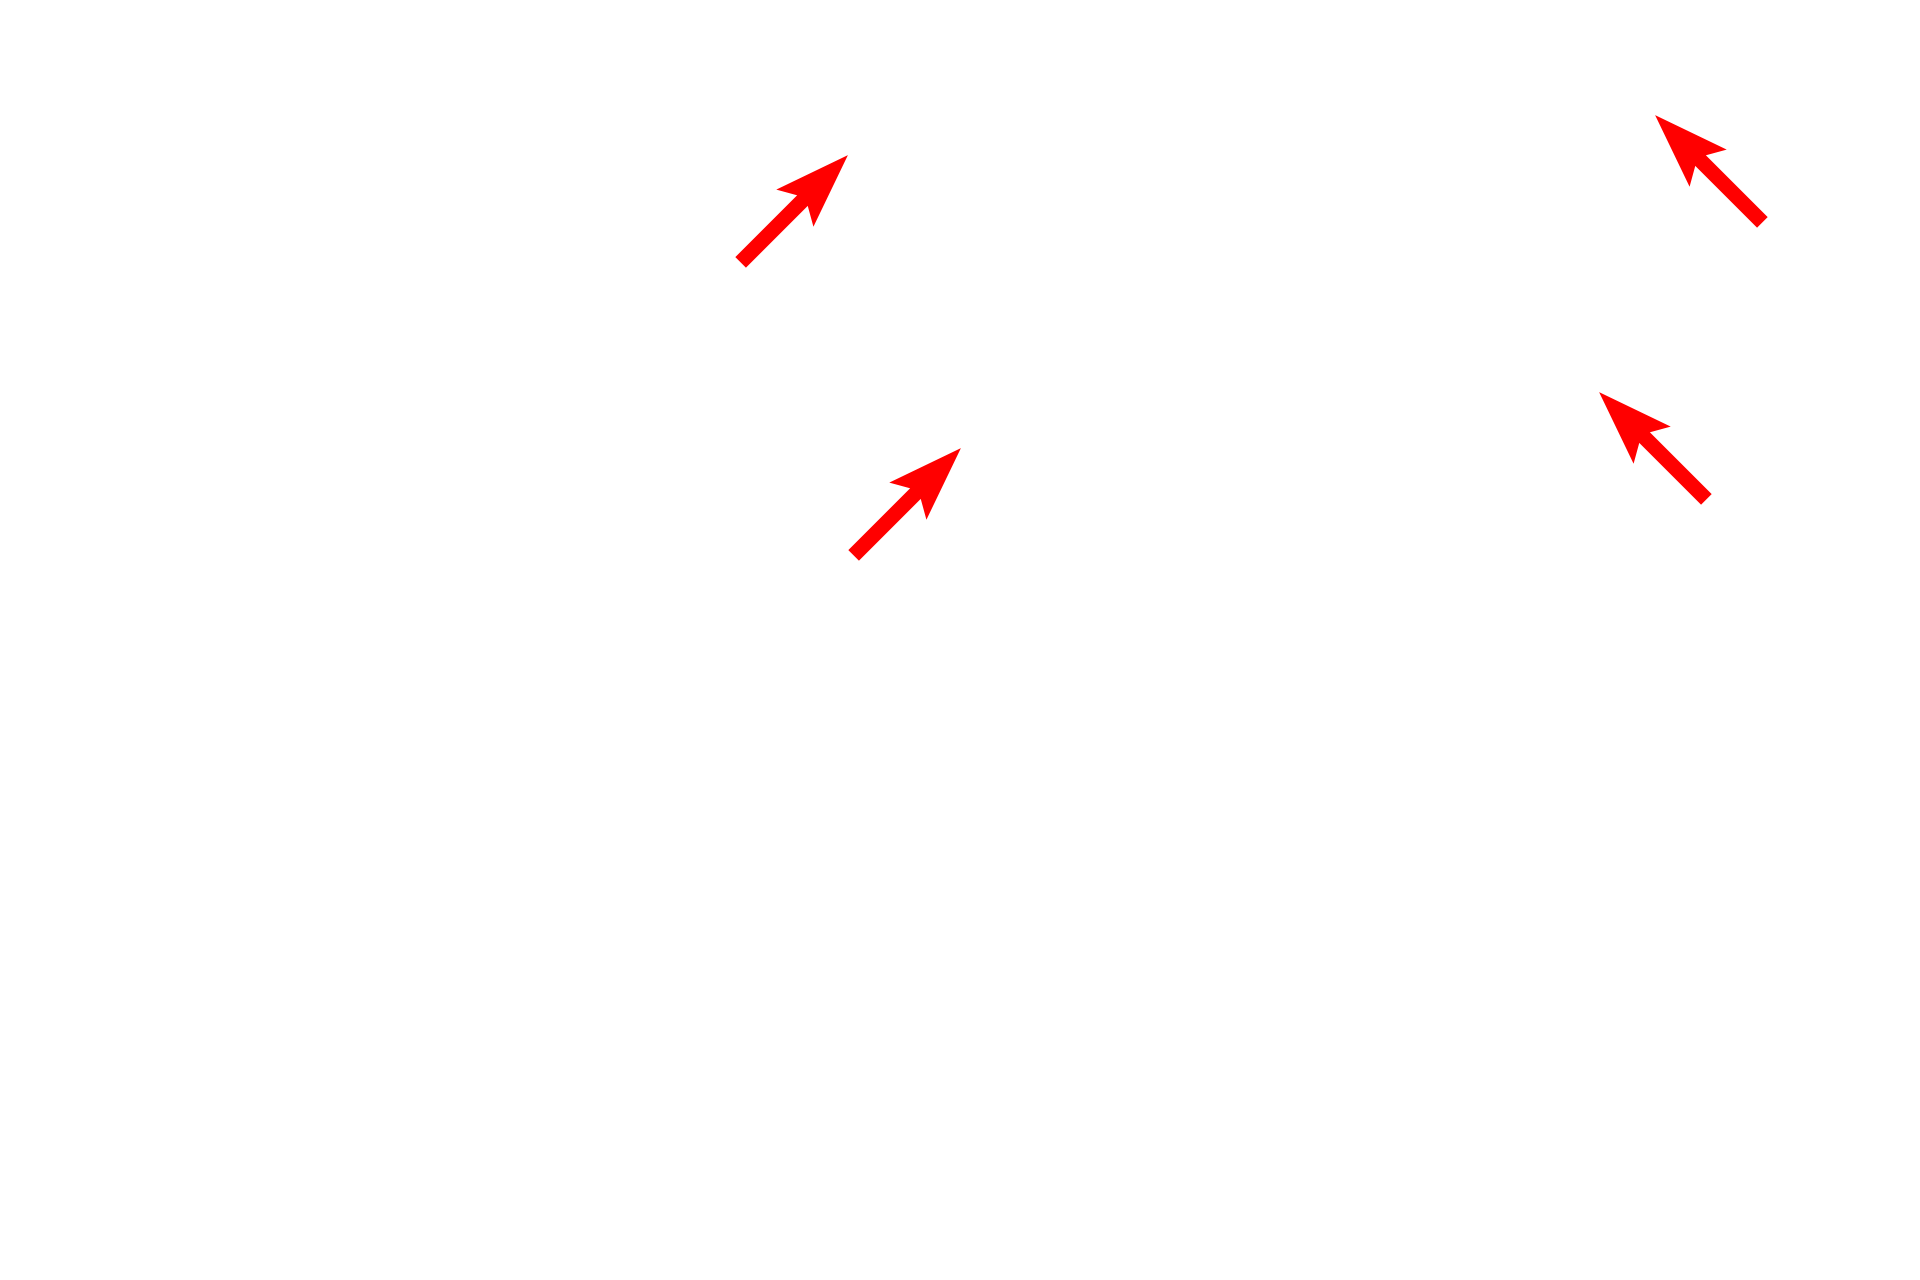 Perimysium <p>Skeletal muscle is invested by three CT layers that bind the muscle together and transmit the force of contraction to the muscle insertion. Endomysium surrounds individual muscle cells; perimysium encloses groups of fibers, defining fascicles. Epimysium surrounds the entire muscle, blends with superficial fascia, and is continuous with a tendon. Masson stain 100x</p>